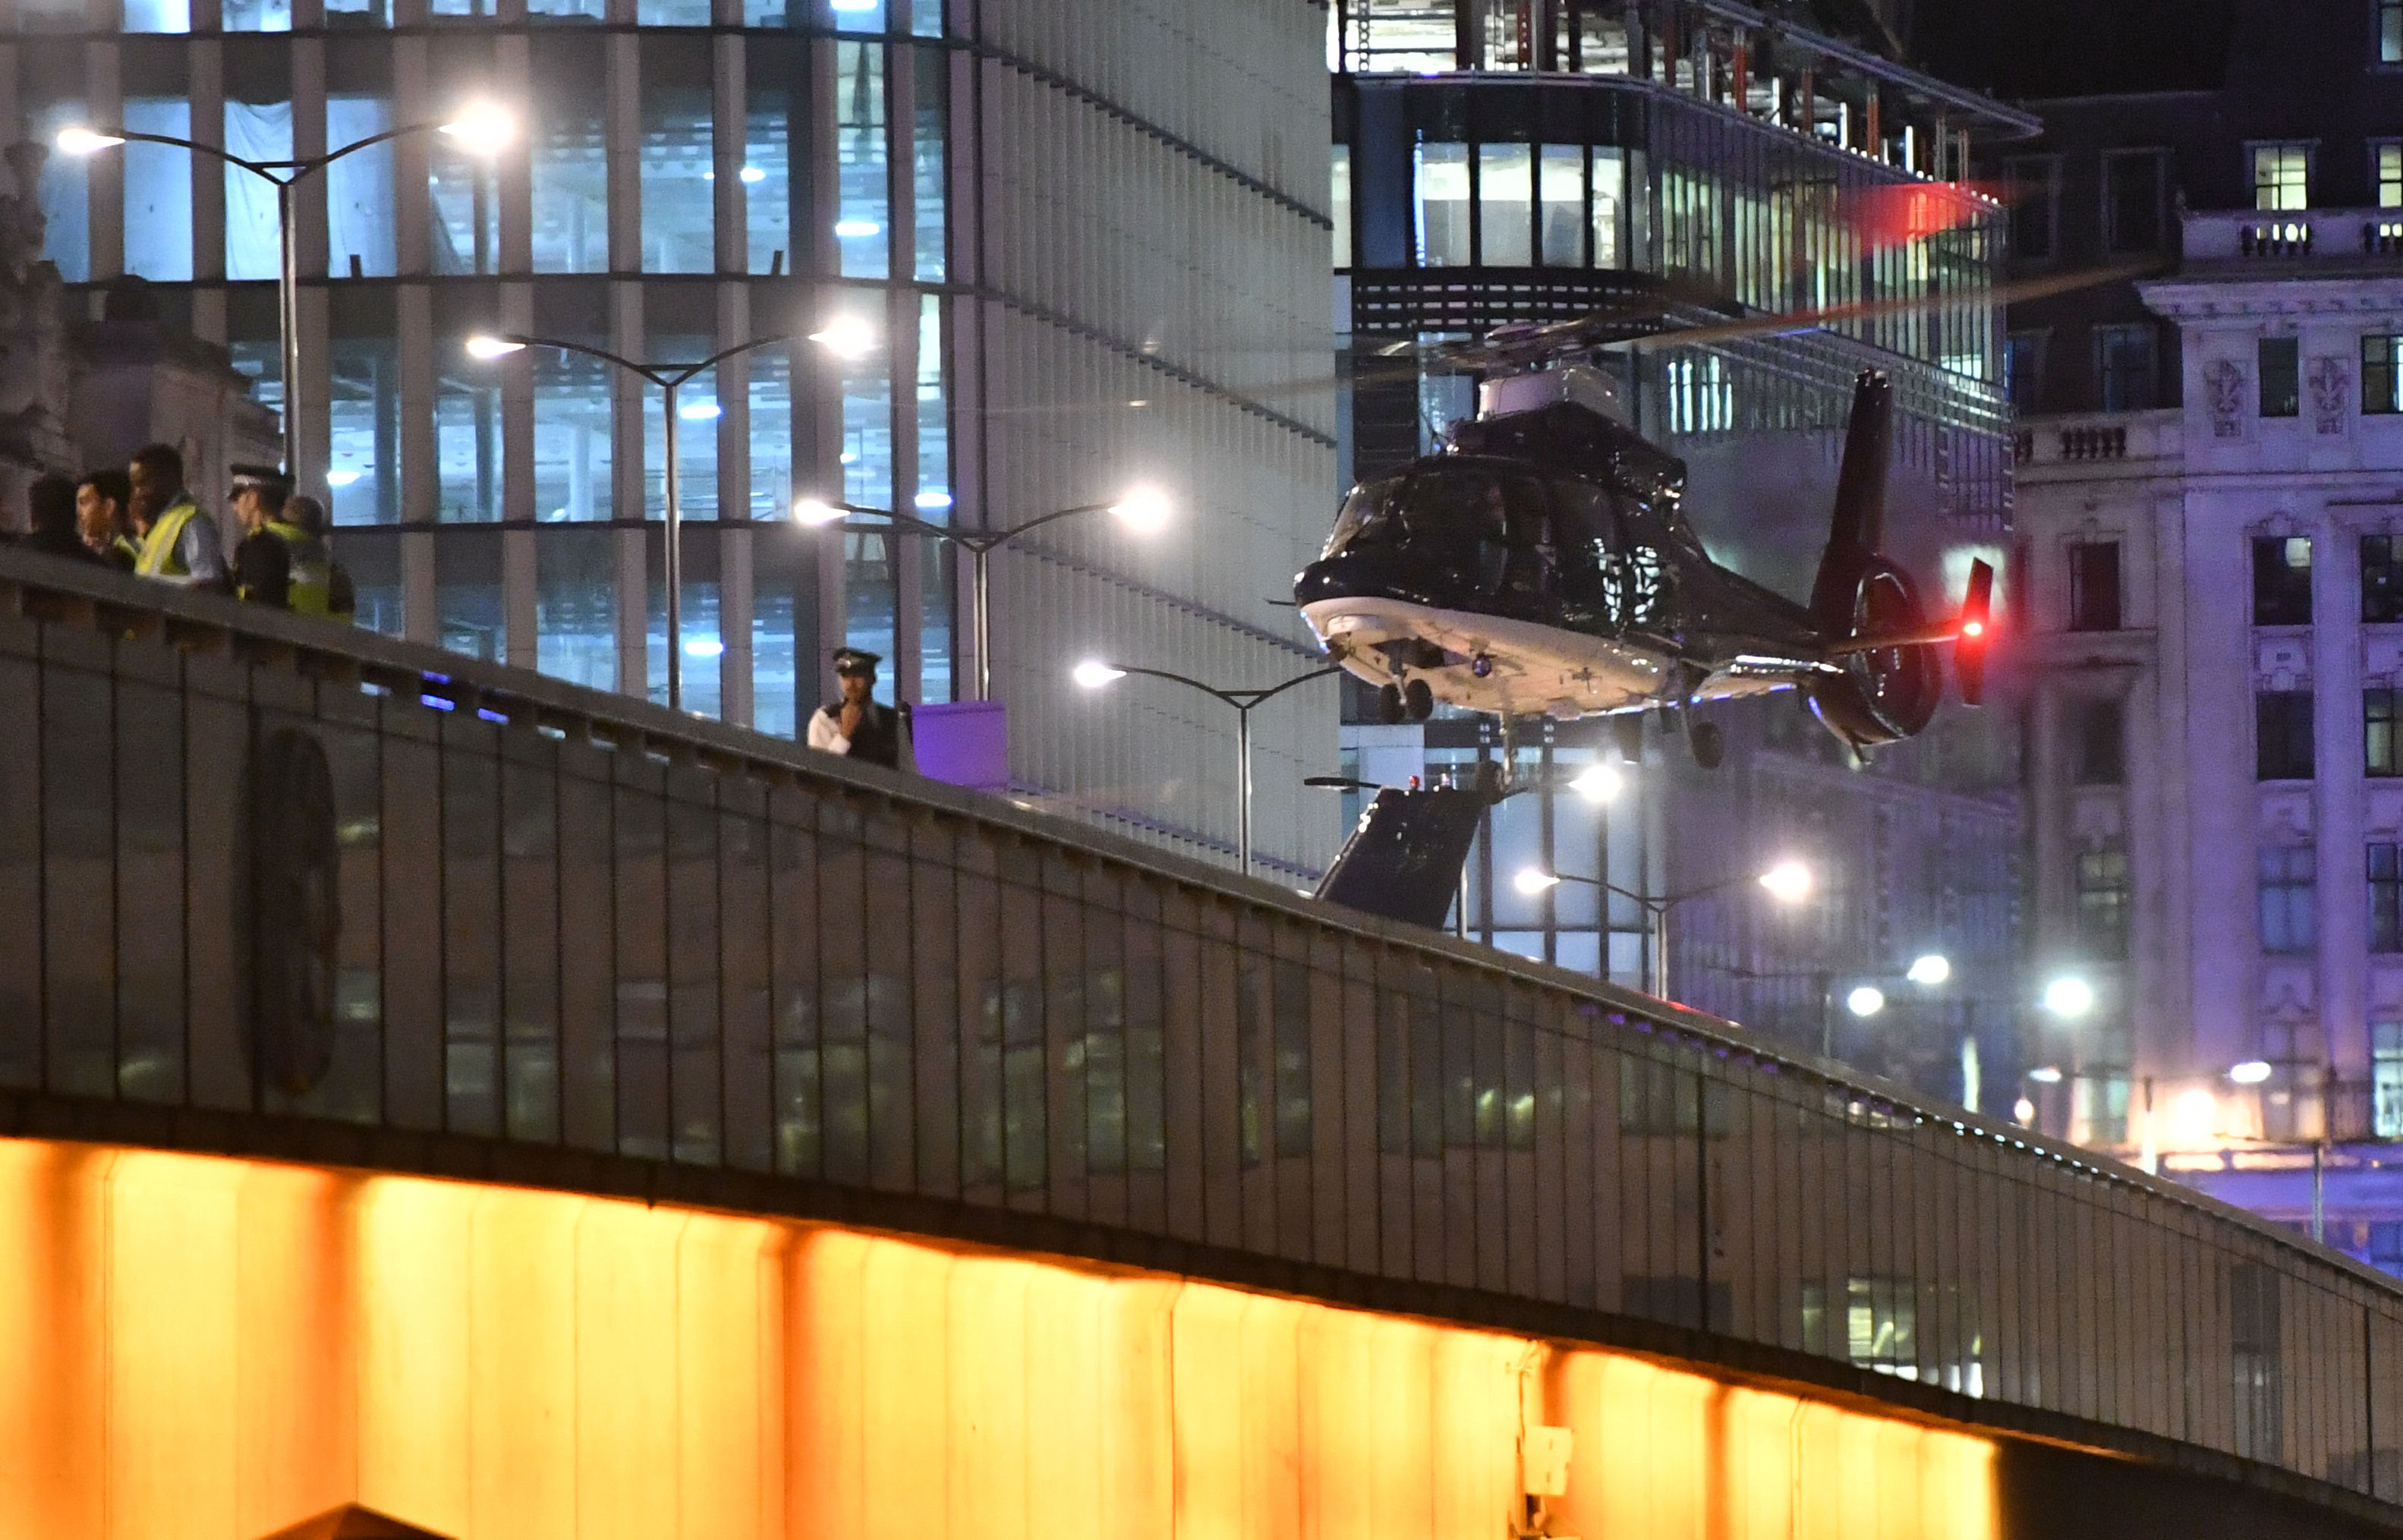 A second helicopter lands on London Bridge.